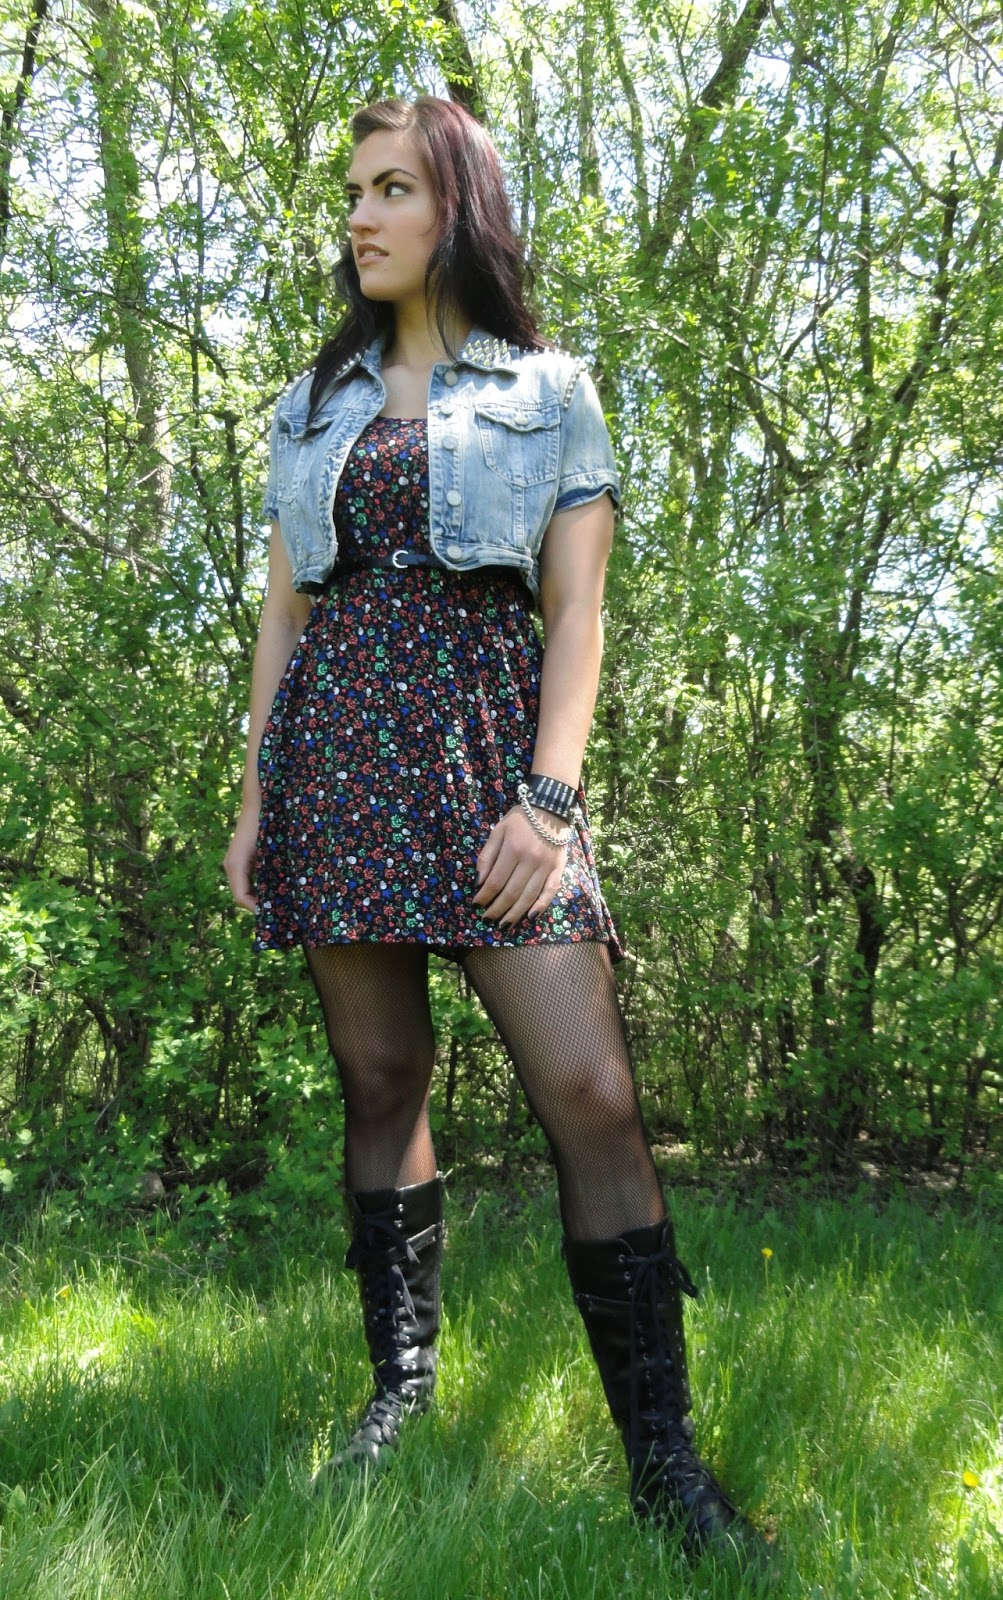 the corporate witch pirate floral dress combat boots and